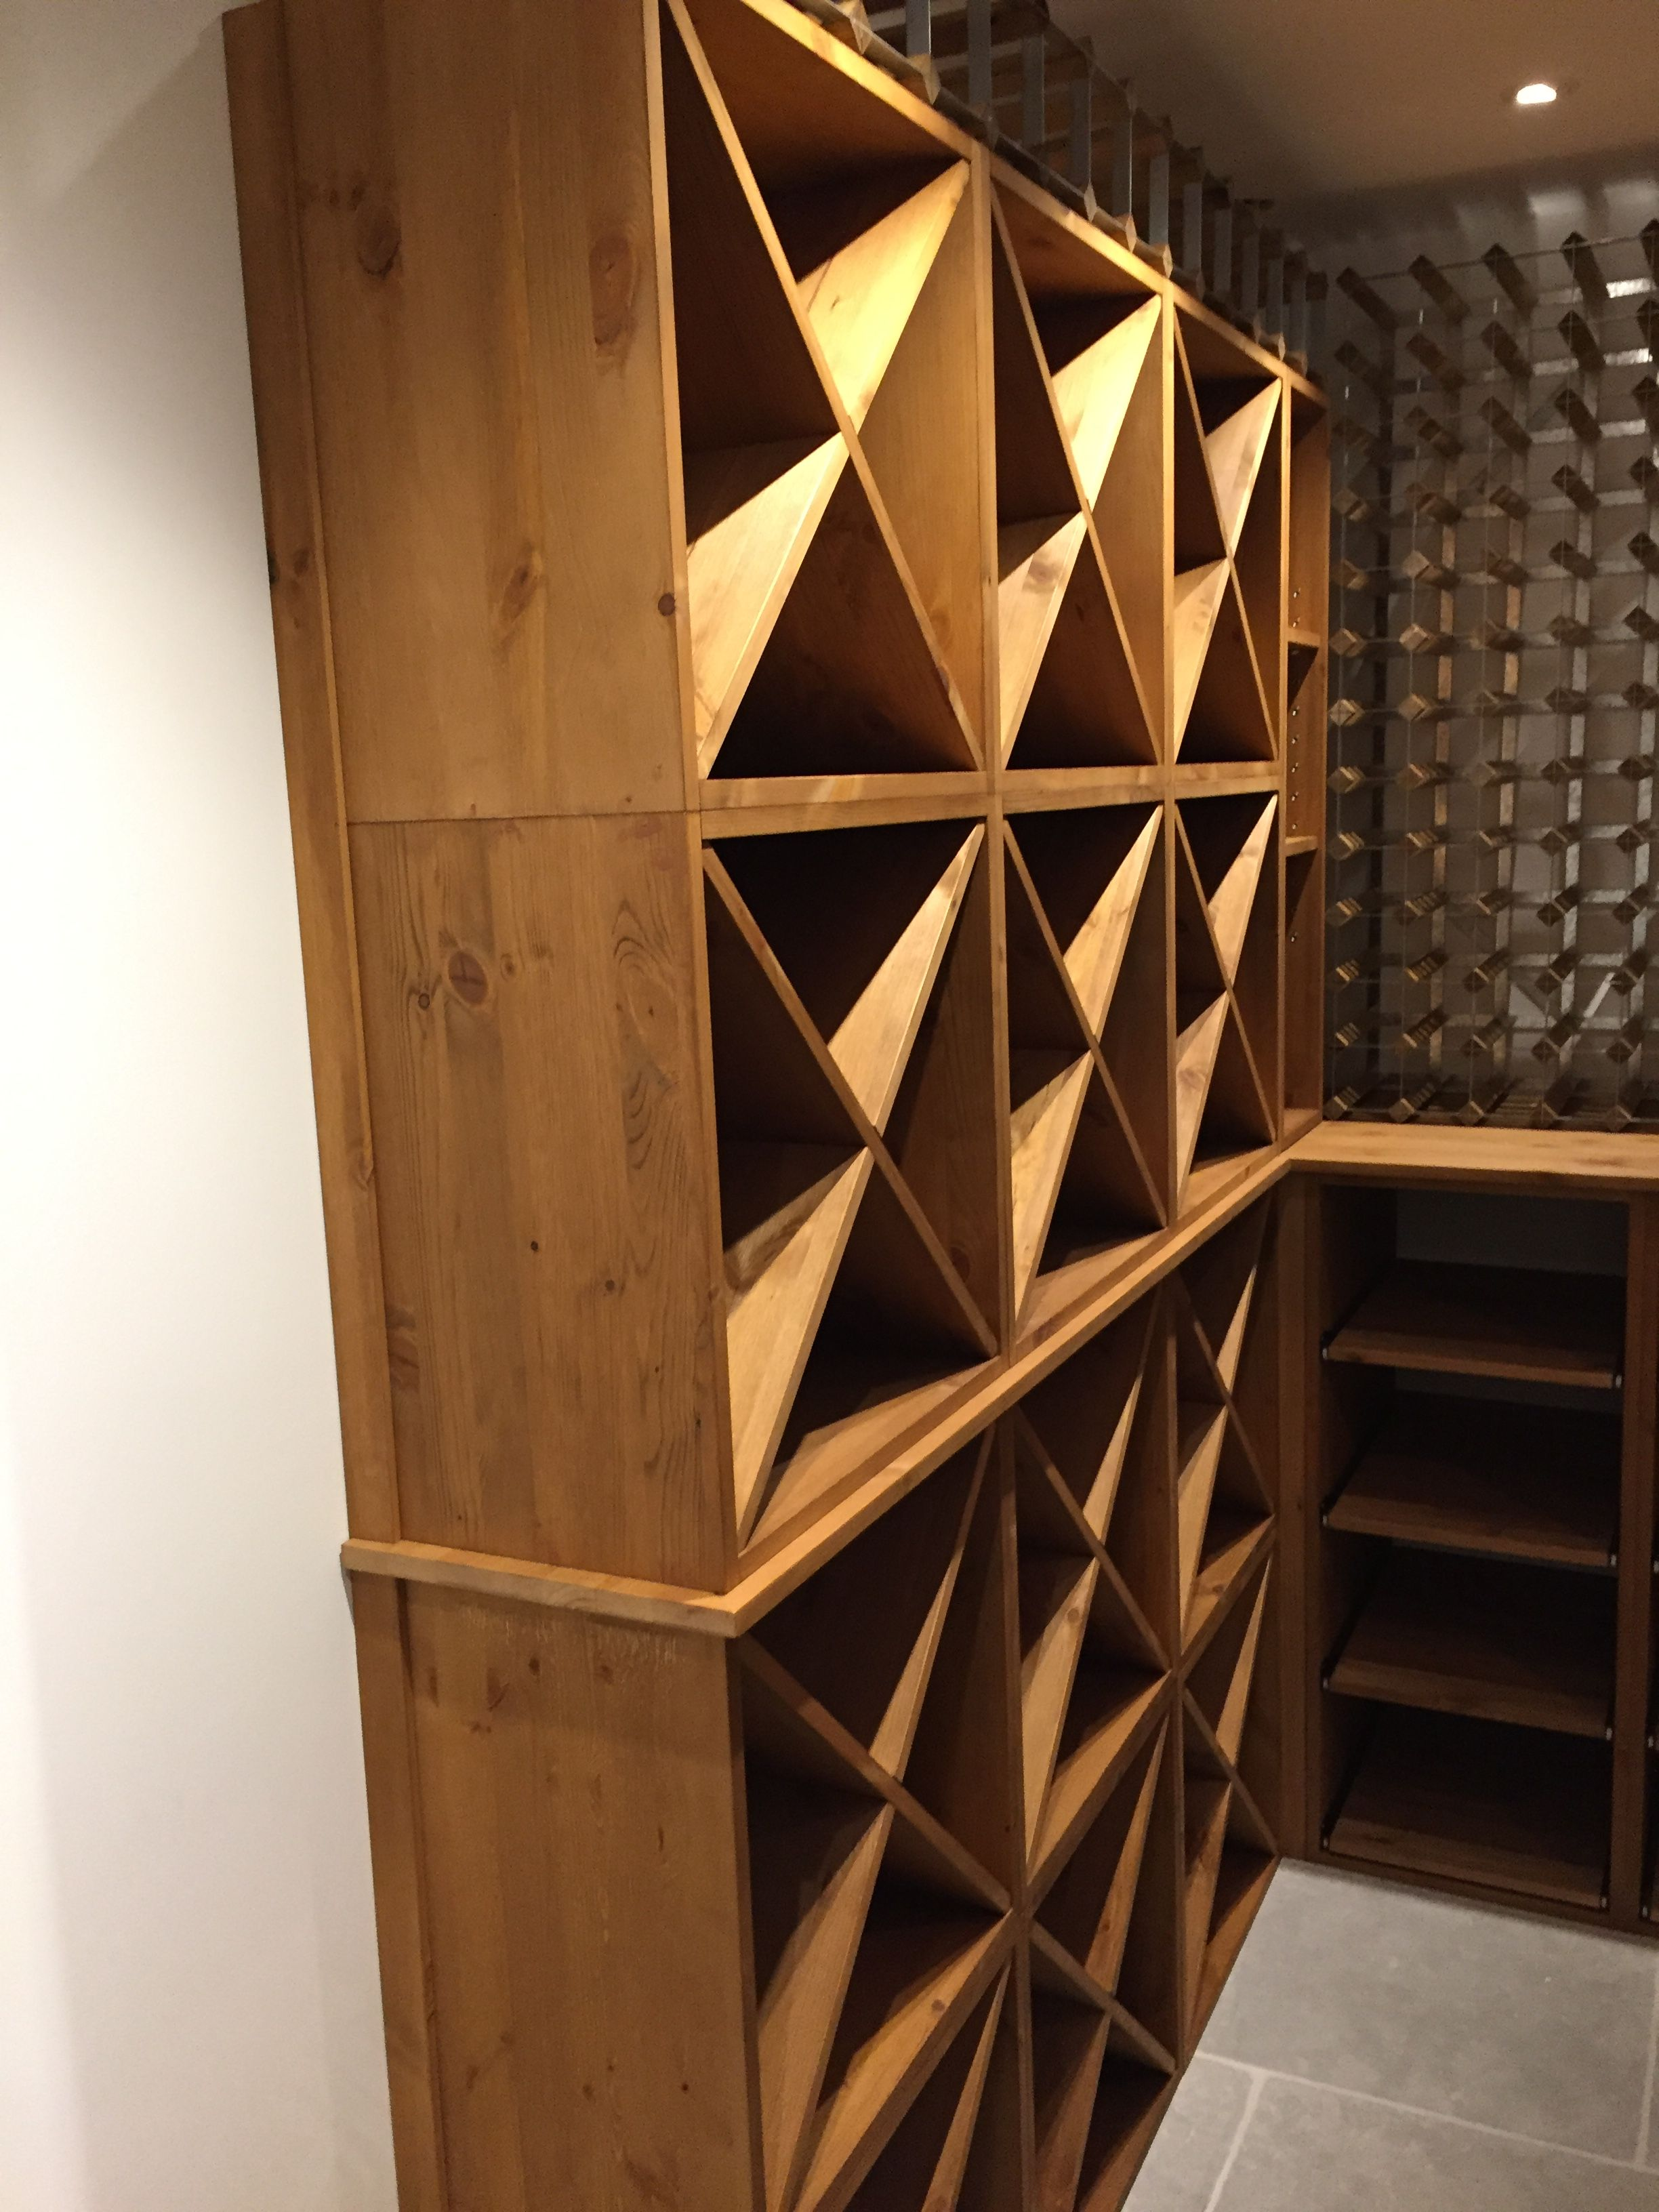 A Mixture Of Traditional Pine And Metal Racks With Storage Cubes, Case  Racks And Worktop Surfaces For A Private Home Supplied By Wineware In The  UK.